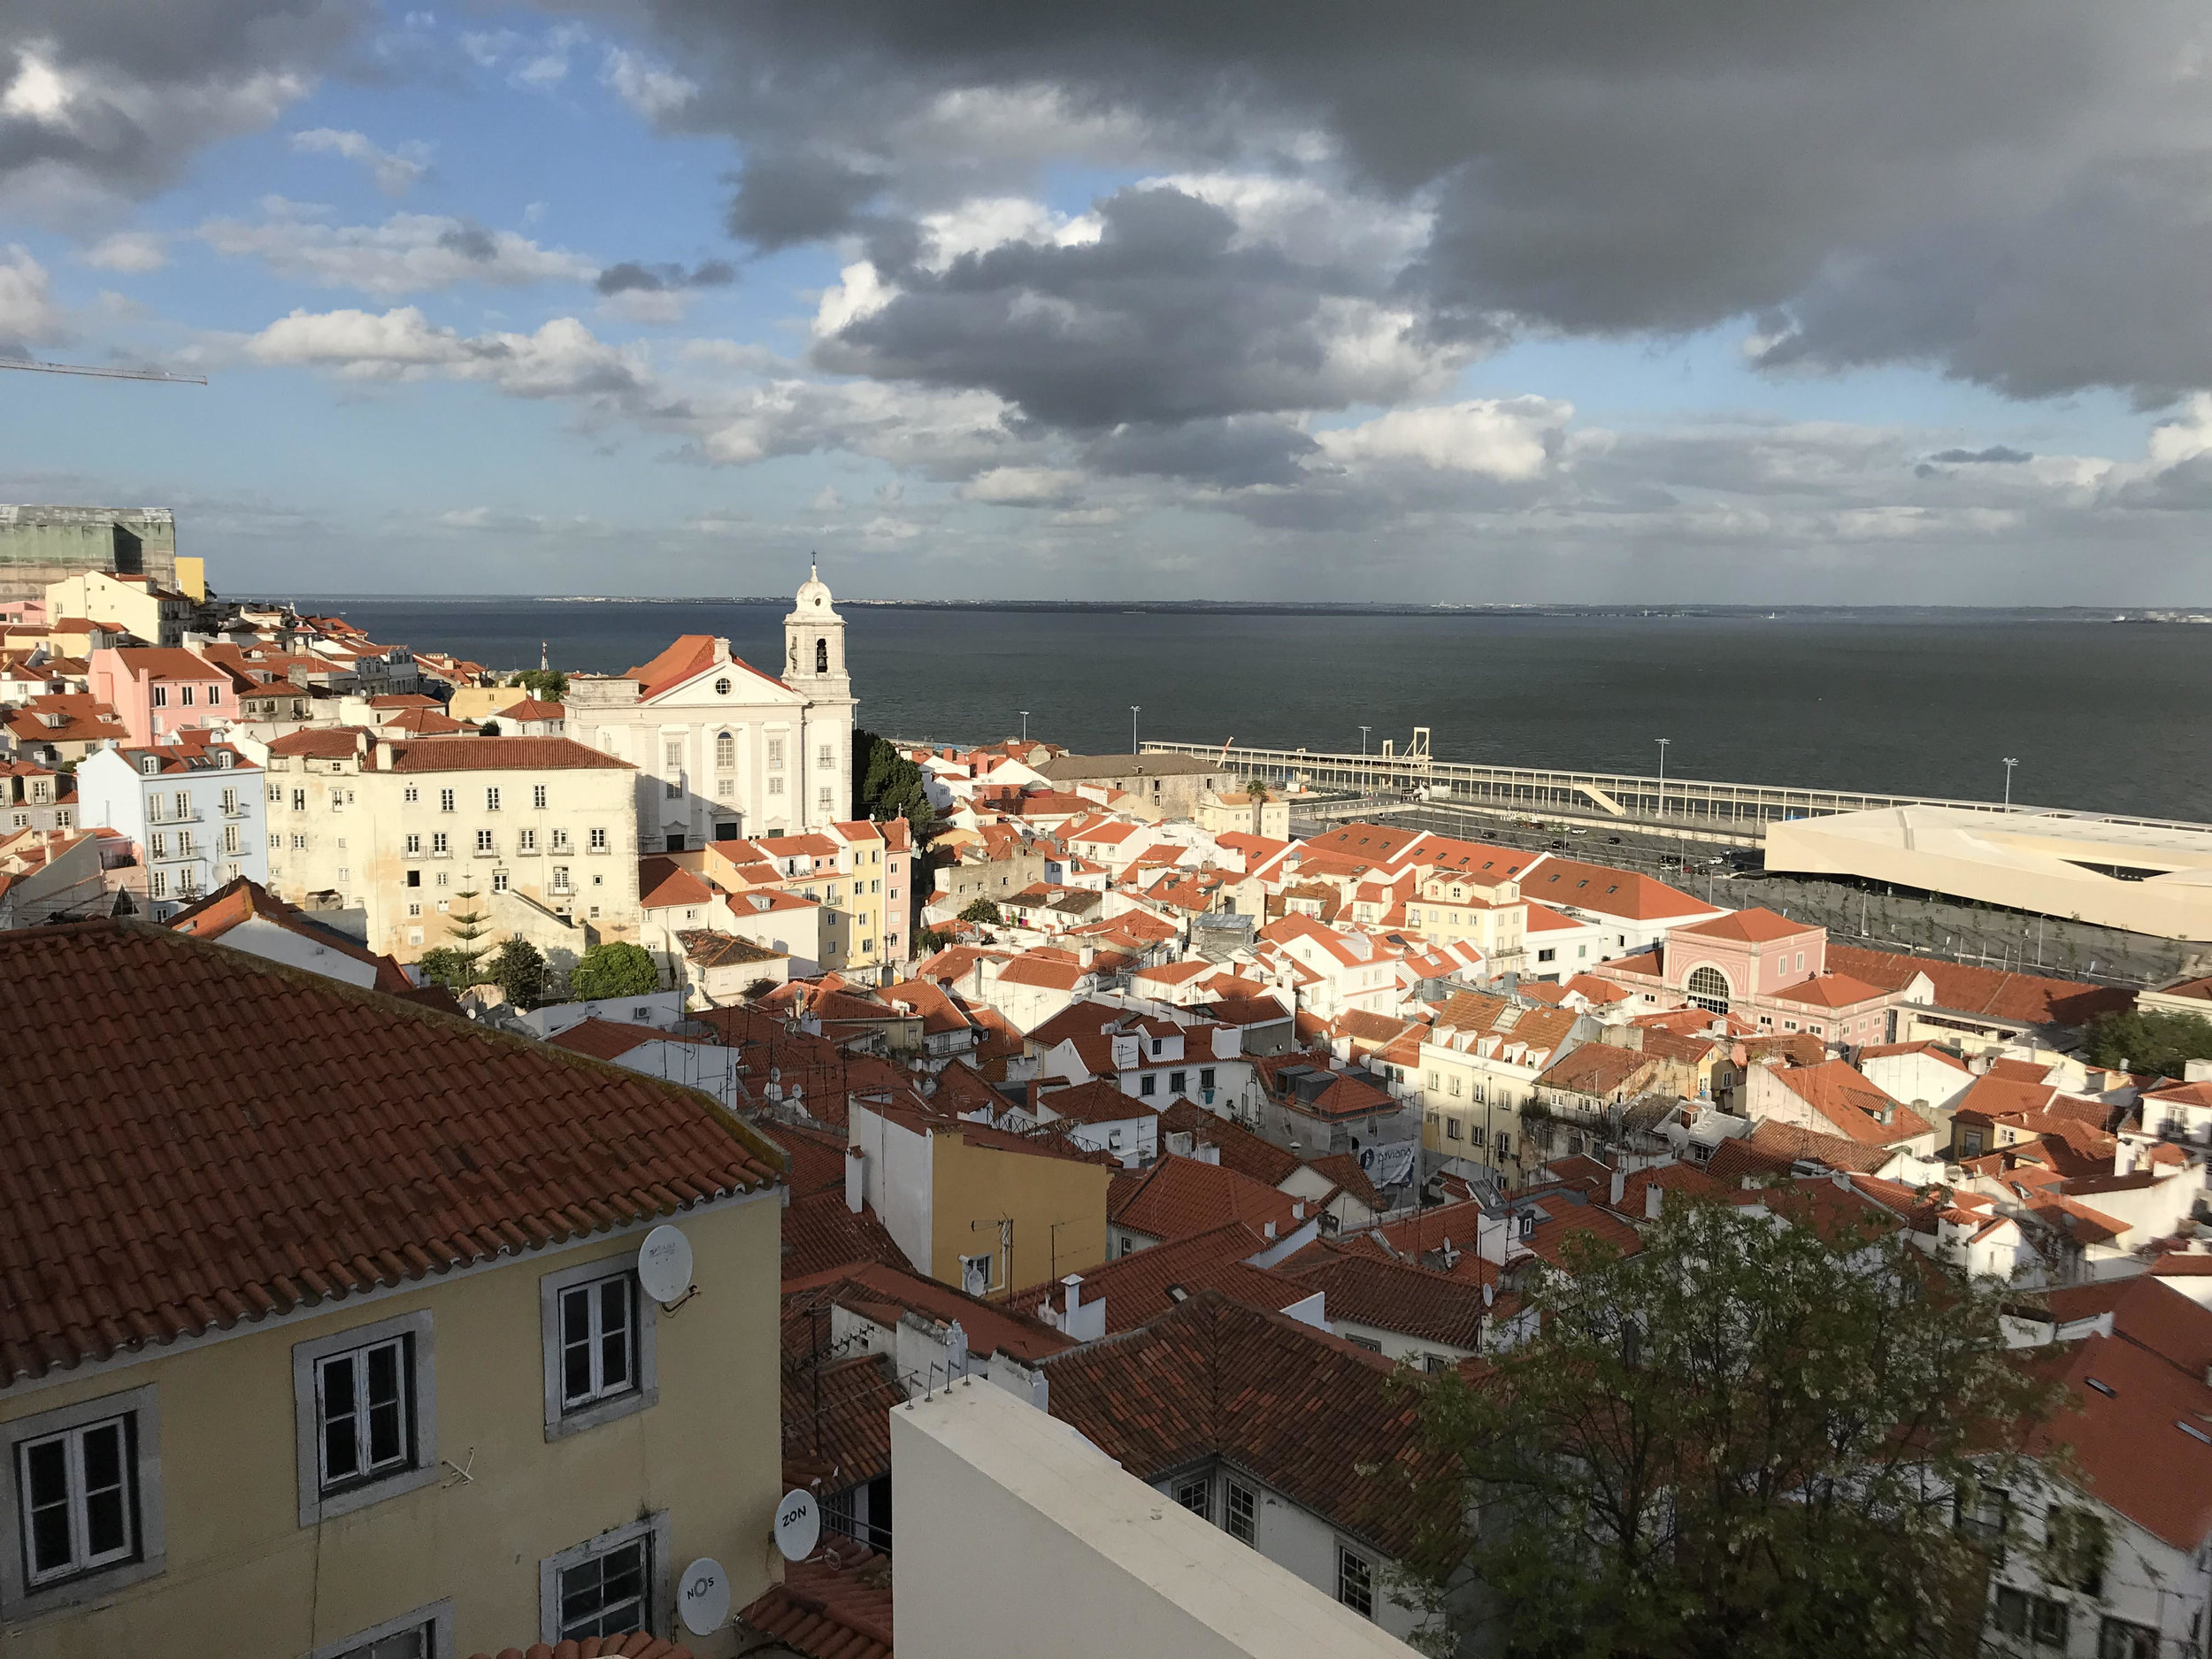 Rooftops of the Alfama neighborhood in Lisbon